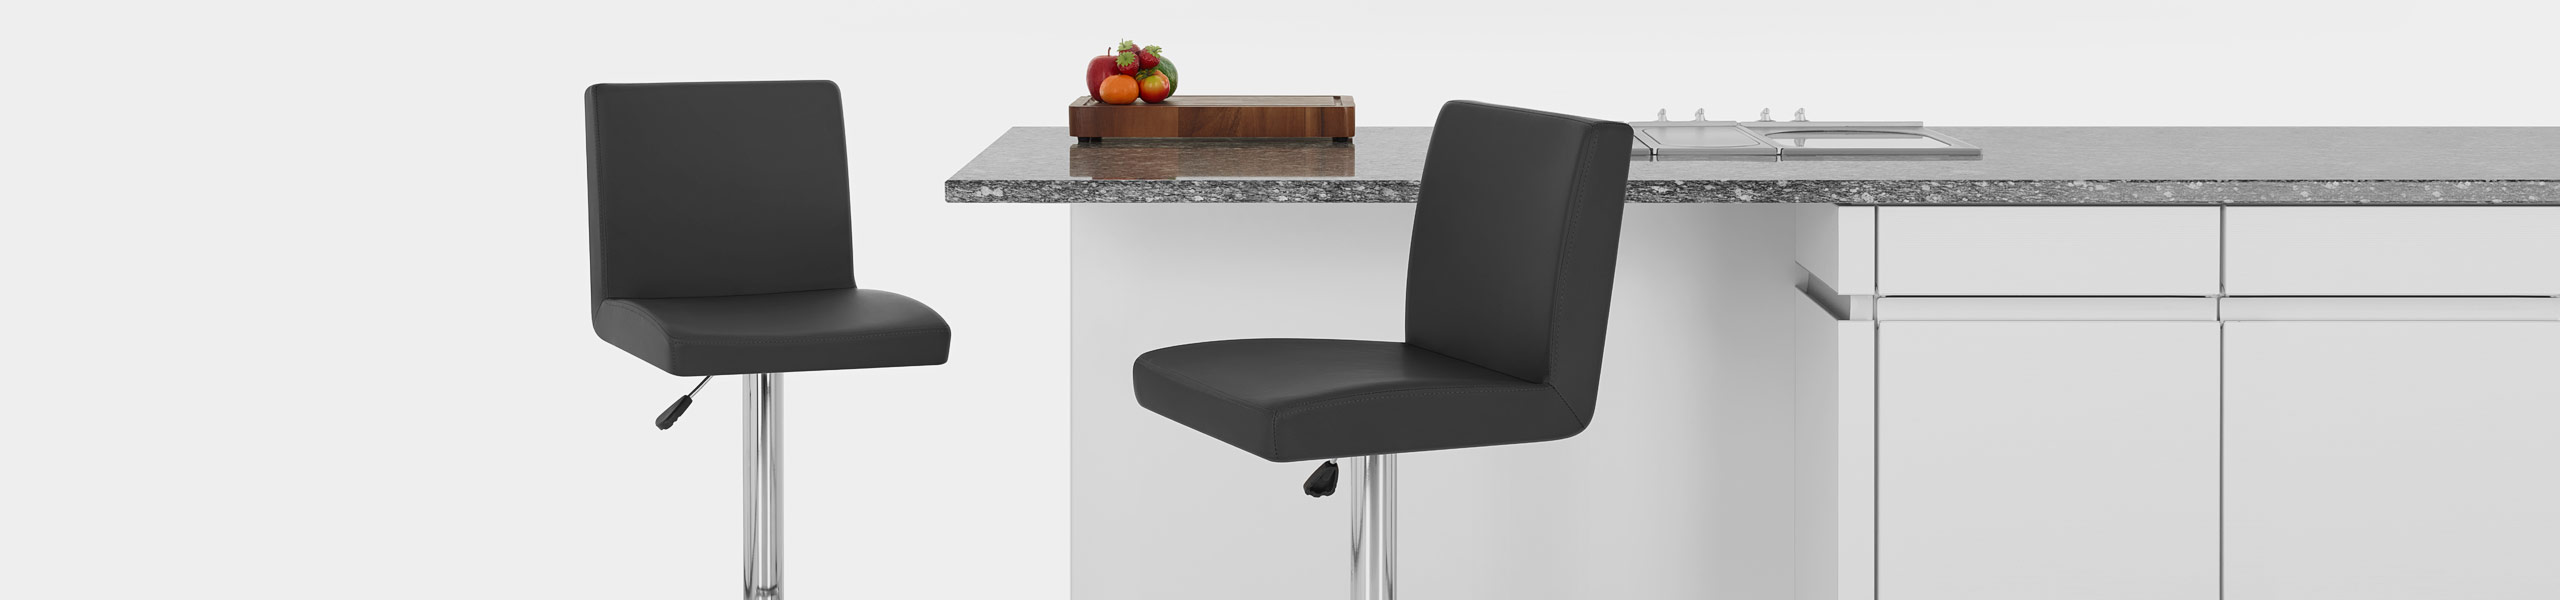 Topaz Bar Stool Black Video Banner